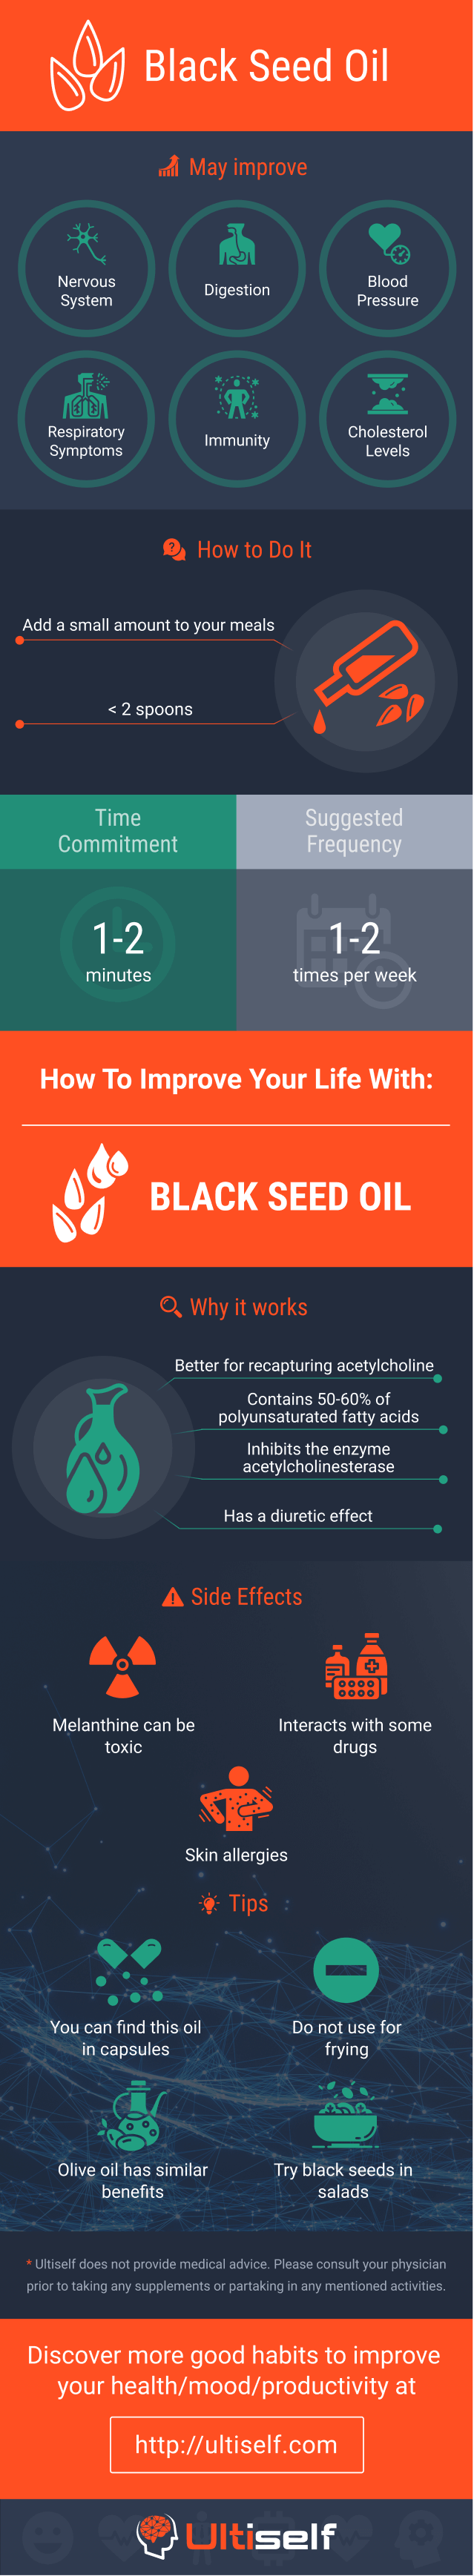 Black Seed Oil infographic